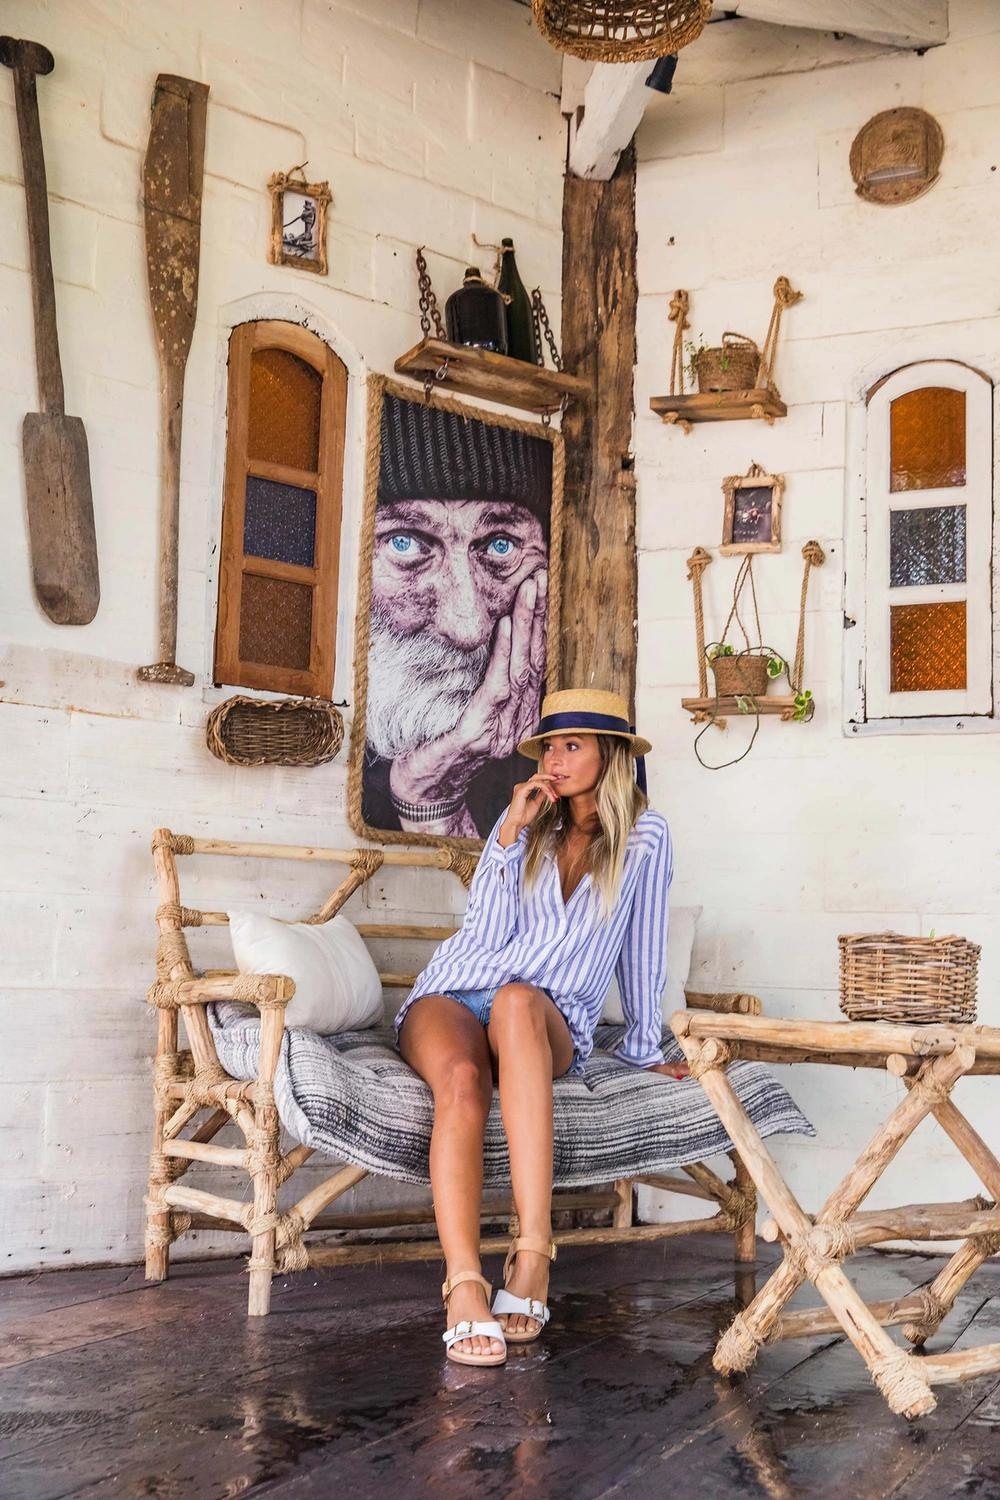 Bared_Footwear_La_Brisa_Bali_Travel_Summer_Womens_Campaign_Fantail_White_Leather_Sandals